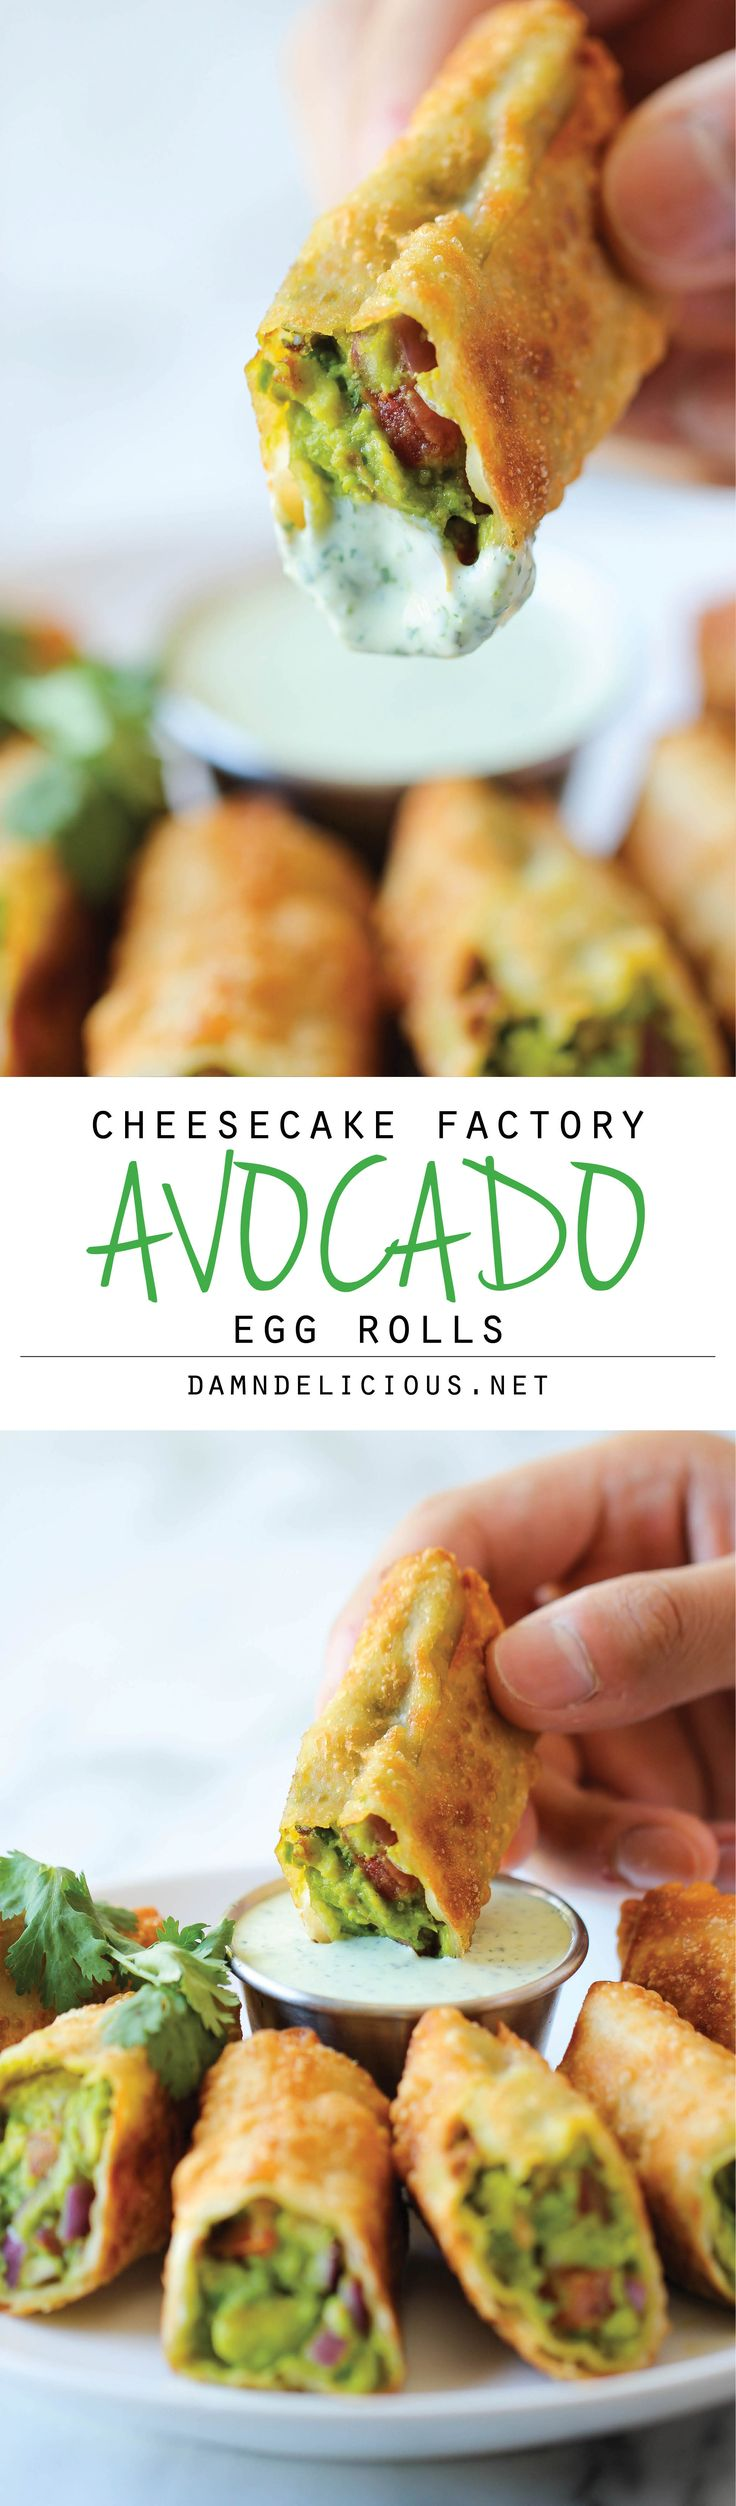 Copycat Cheesecake Factory Avocado Eggrols